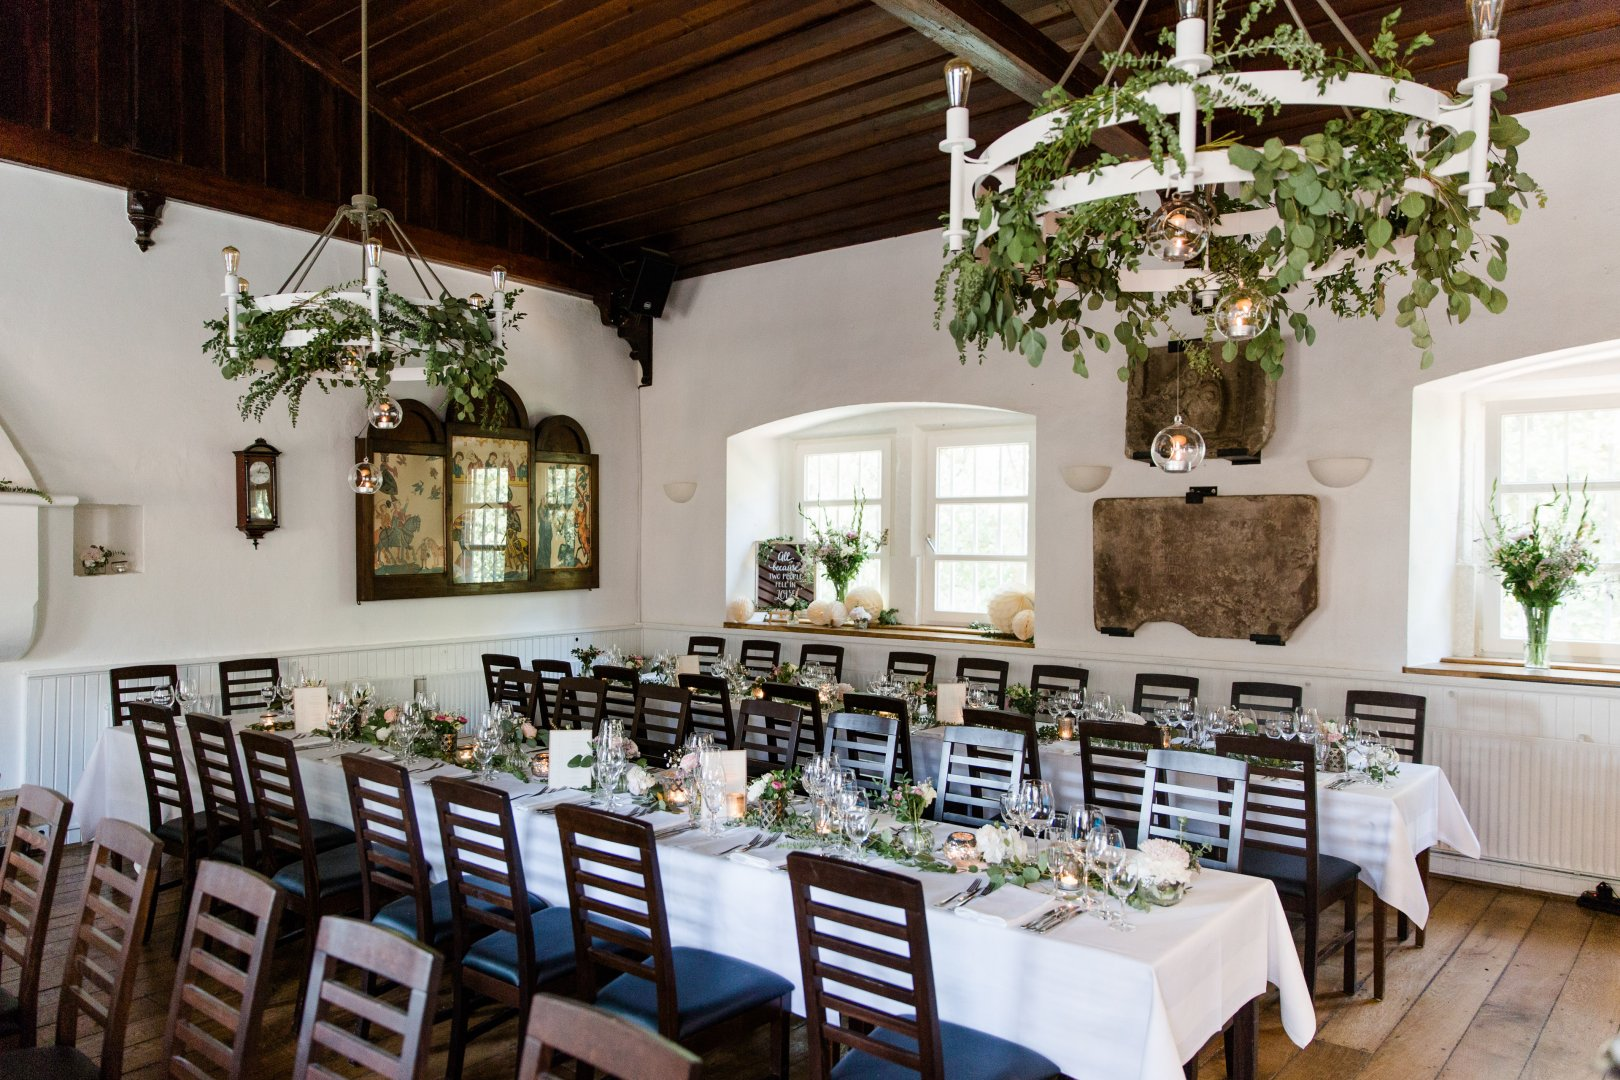 Room Property Restaurant Table Rehearsal dinner Interior design Chair Furniture Building Chiavari chair Function hall Wedding reception Home Real estate Dining room Ceremony Party Estate Event House Ceiling Flower Linens Banquet Meal Brunch Interior design